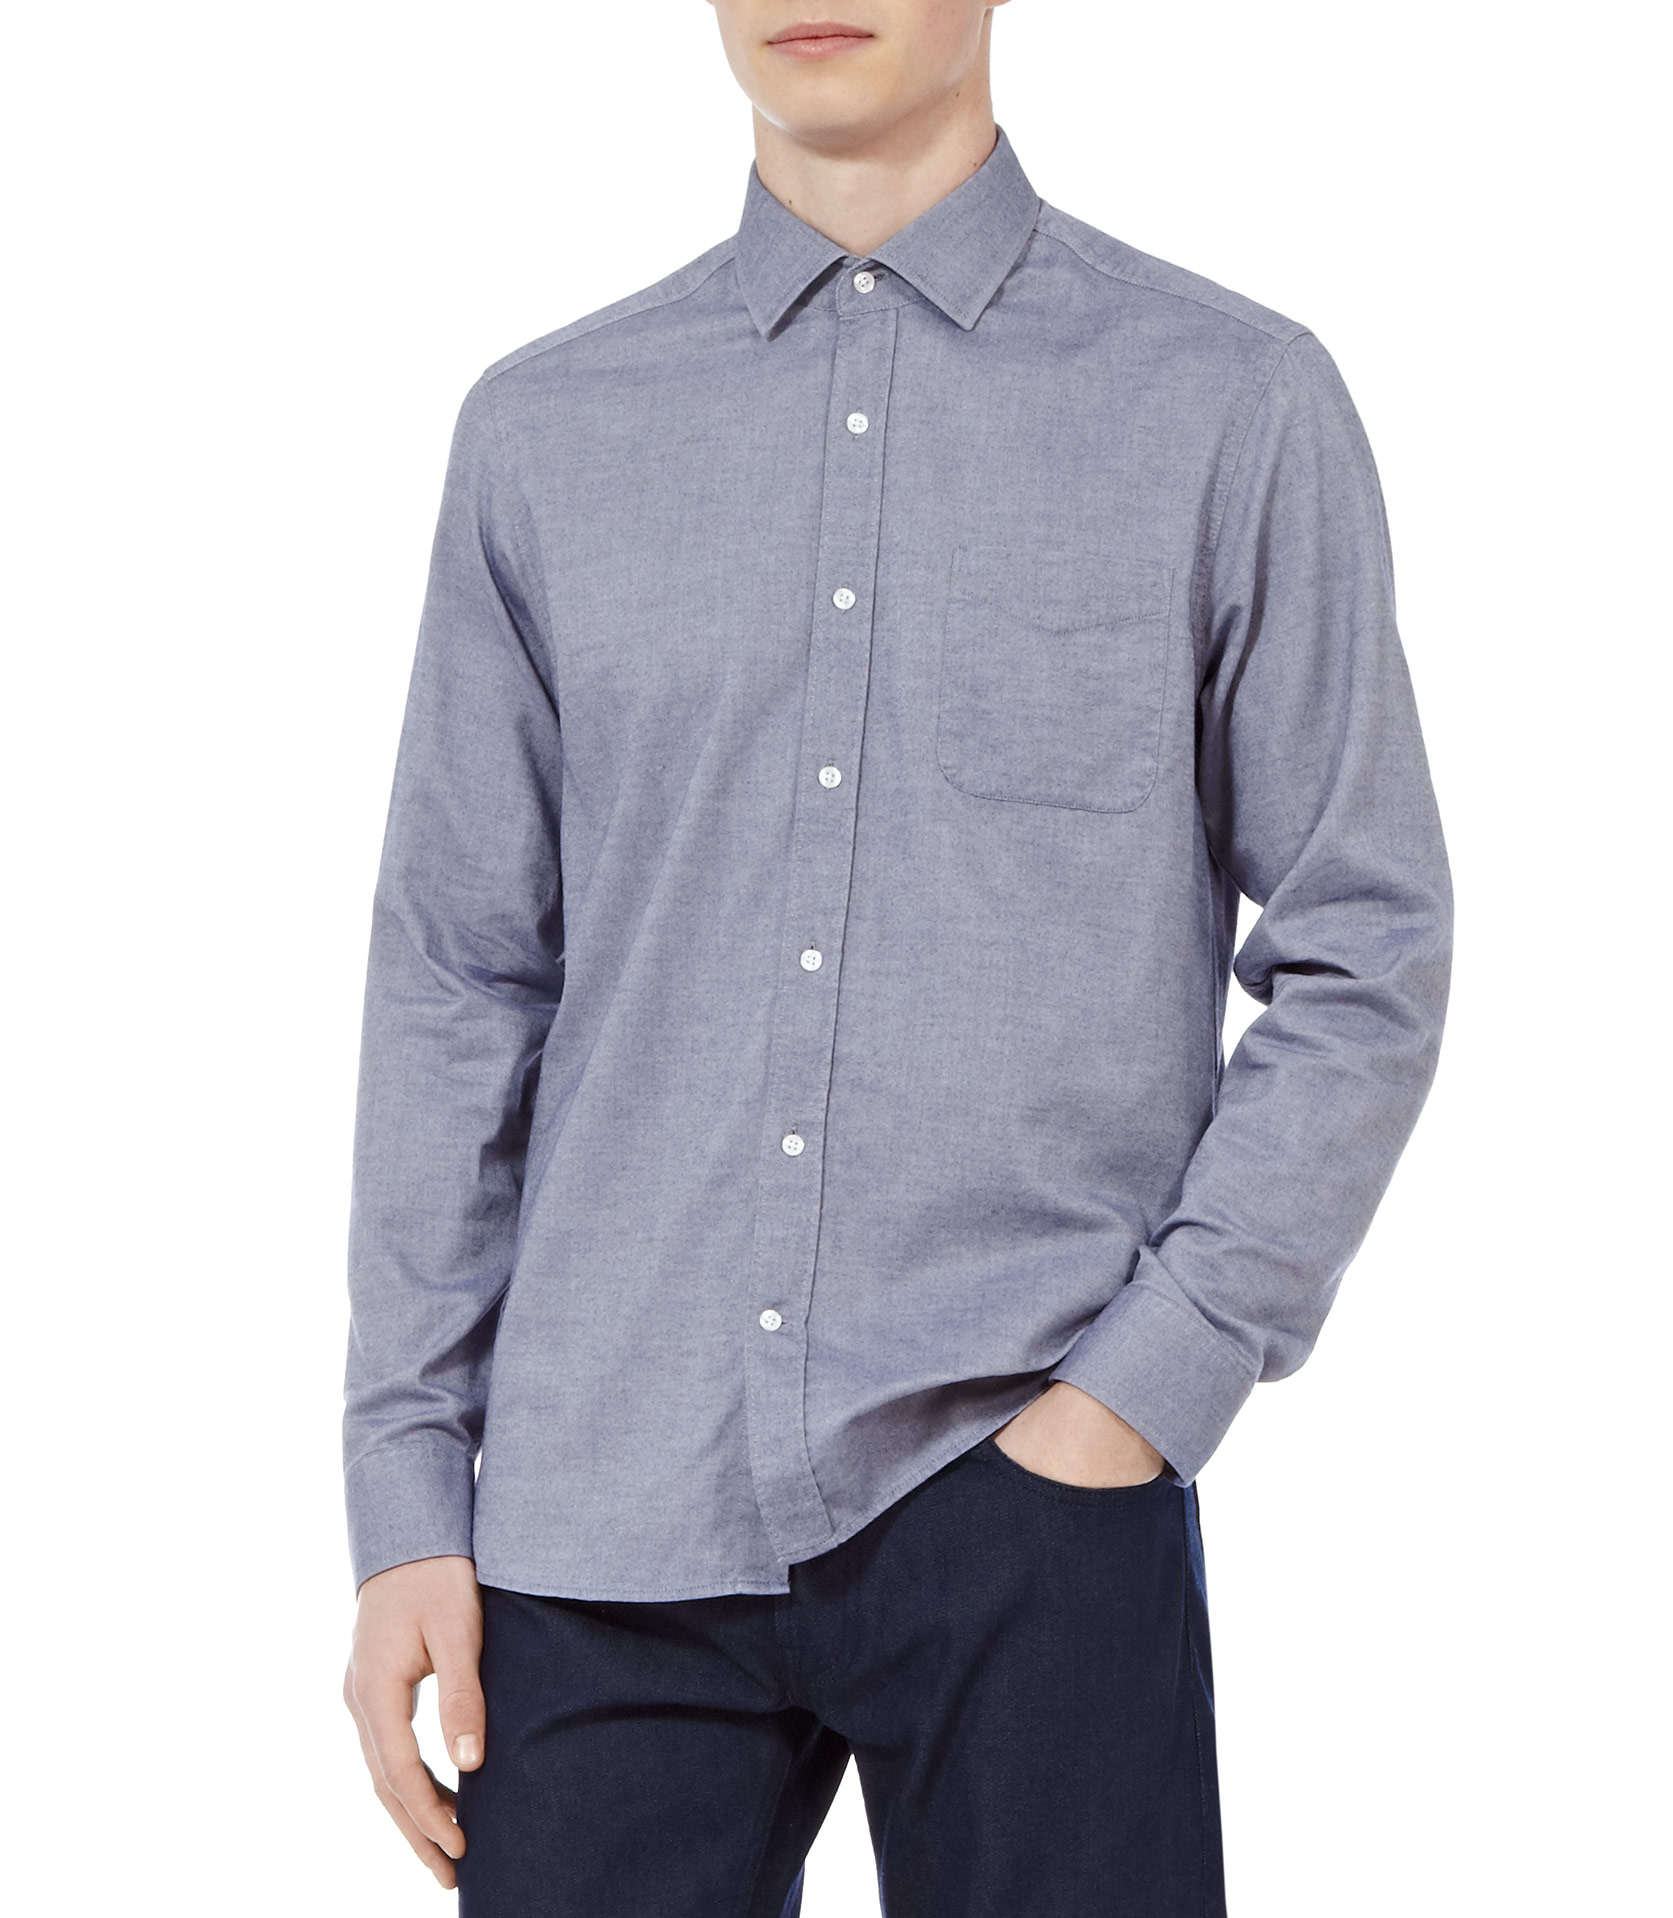 Reiss Pond Soft Chambray Shirt in Blue for Men